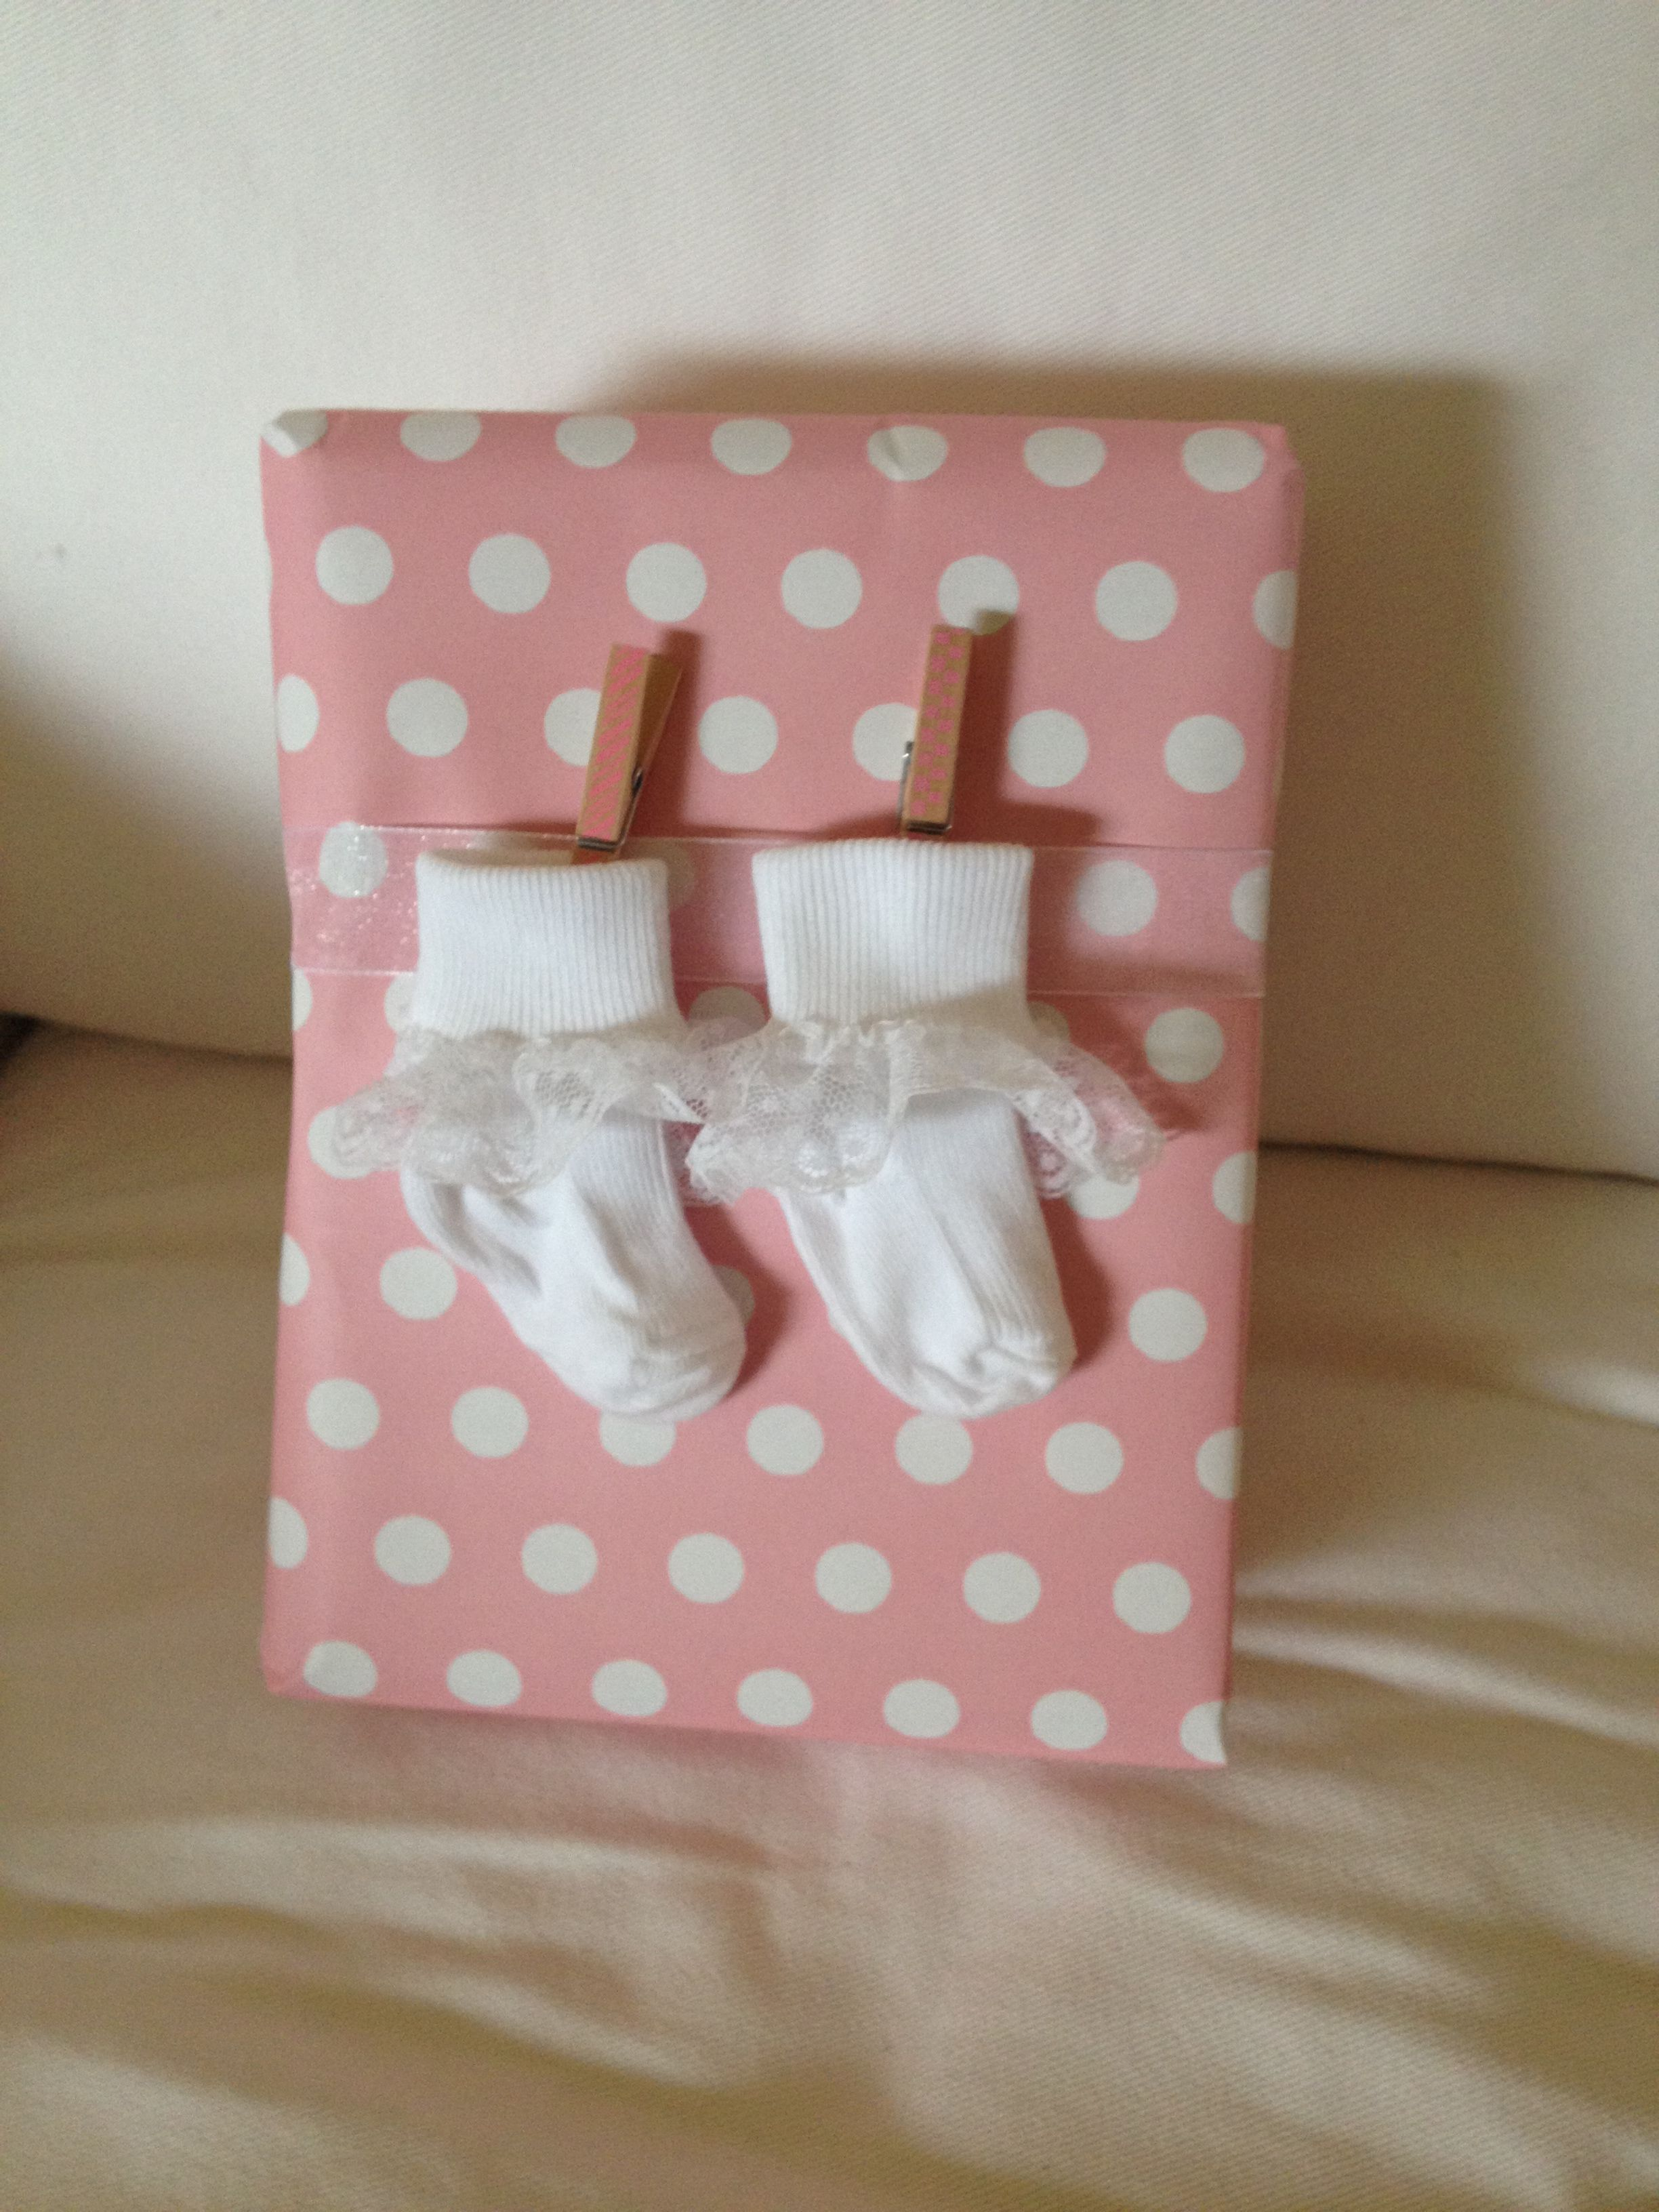 So Cute For Baby Gifts Tie A Ribbon Around The Gift And Attach Some Socks With Clothespins Voila